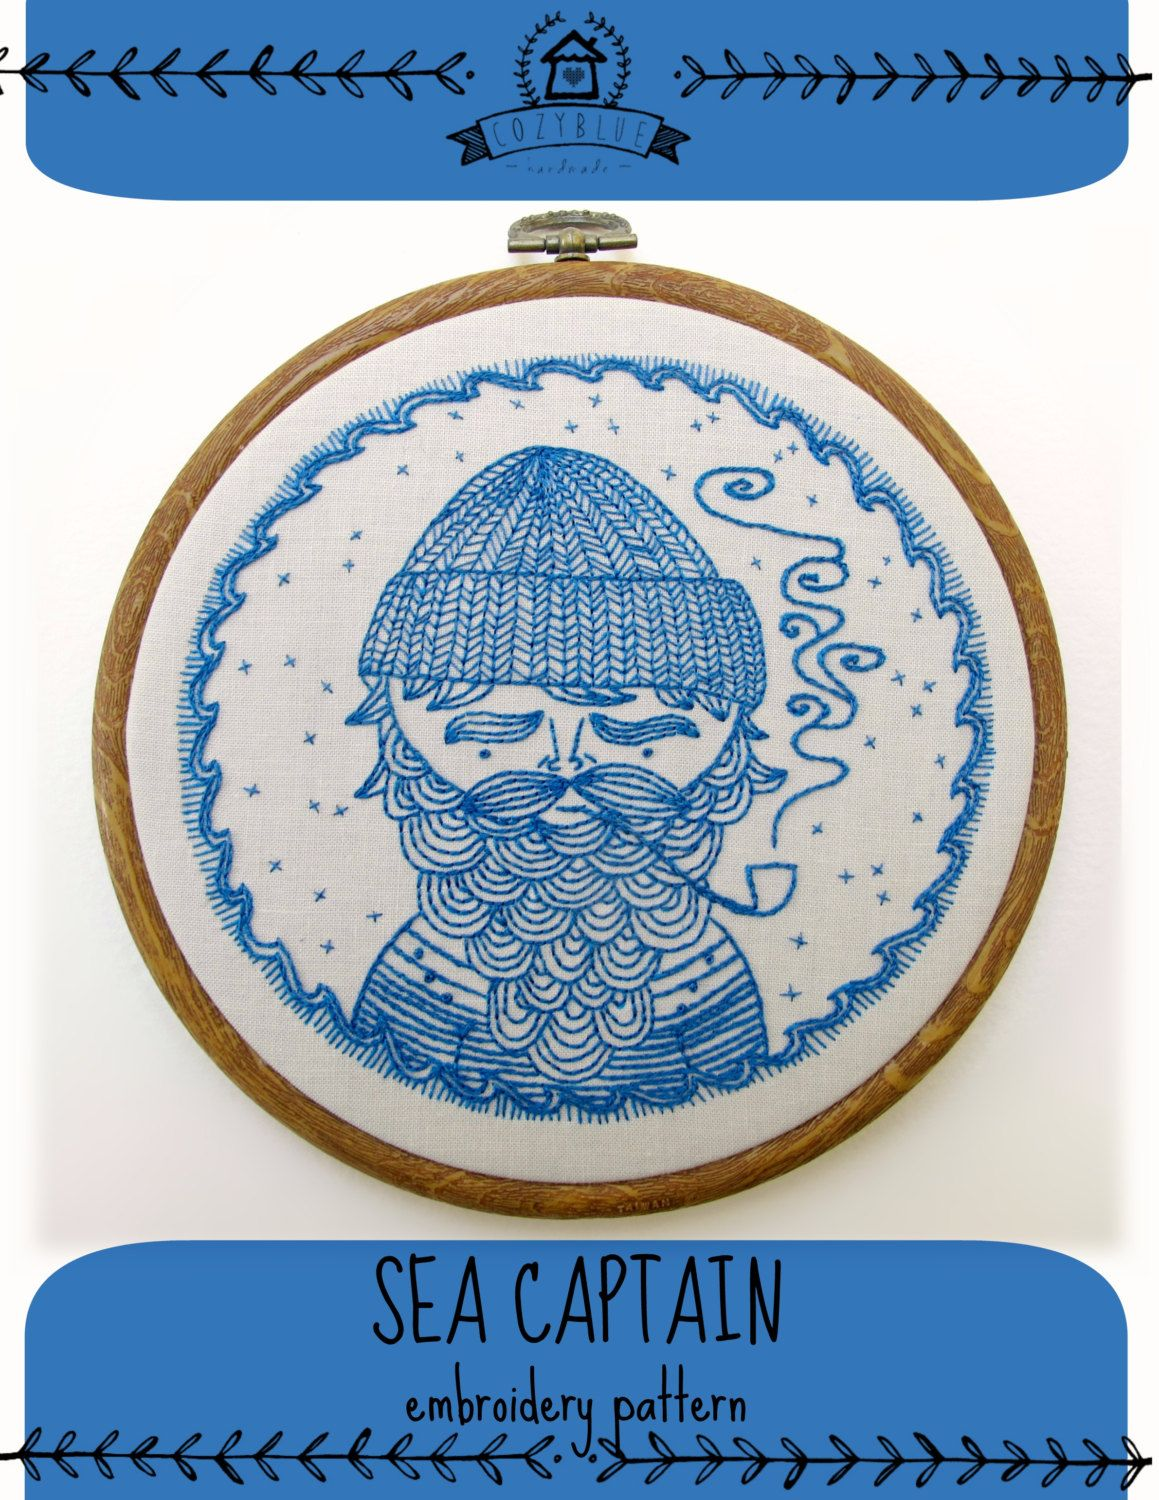 Sea captain pdf embroidery pattern sailor design embroidery sea captain pdf embroidery pattern sailor design embroidery design nautical theme salty sailor man beard man with pipe by cozyblue bankloansurffo Gallery